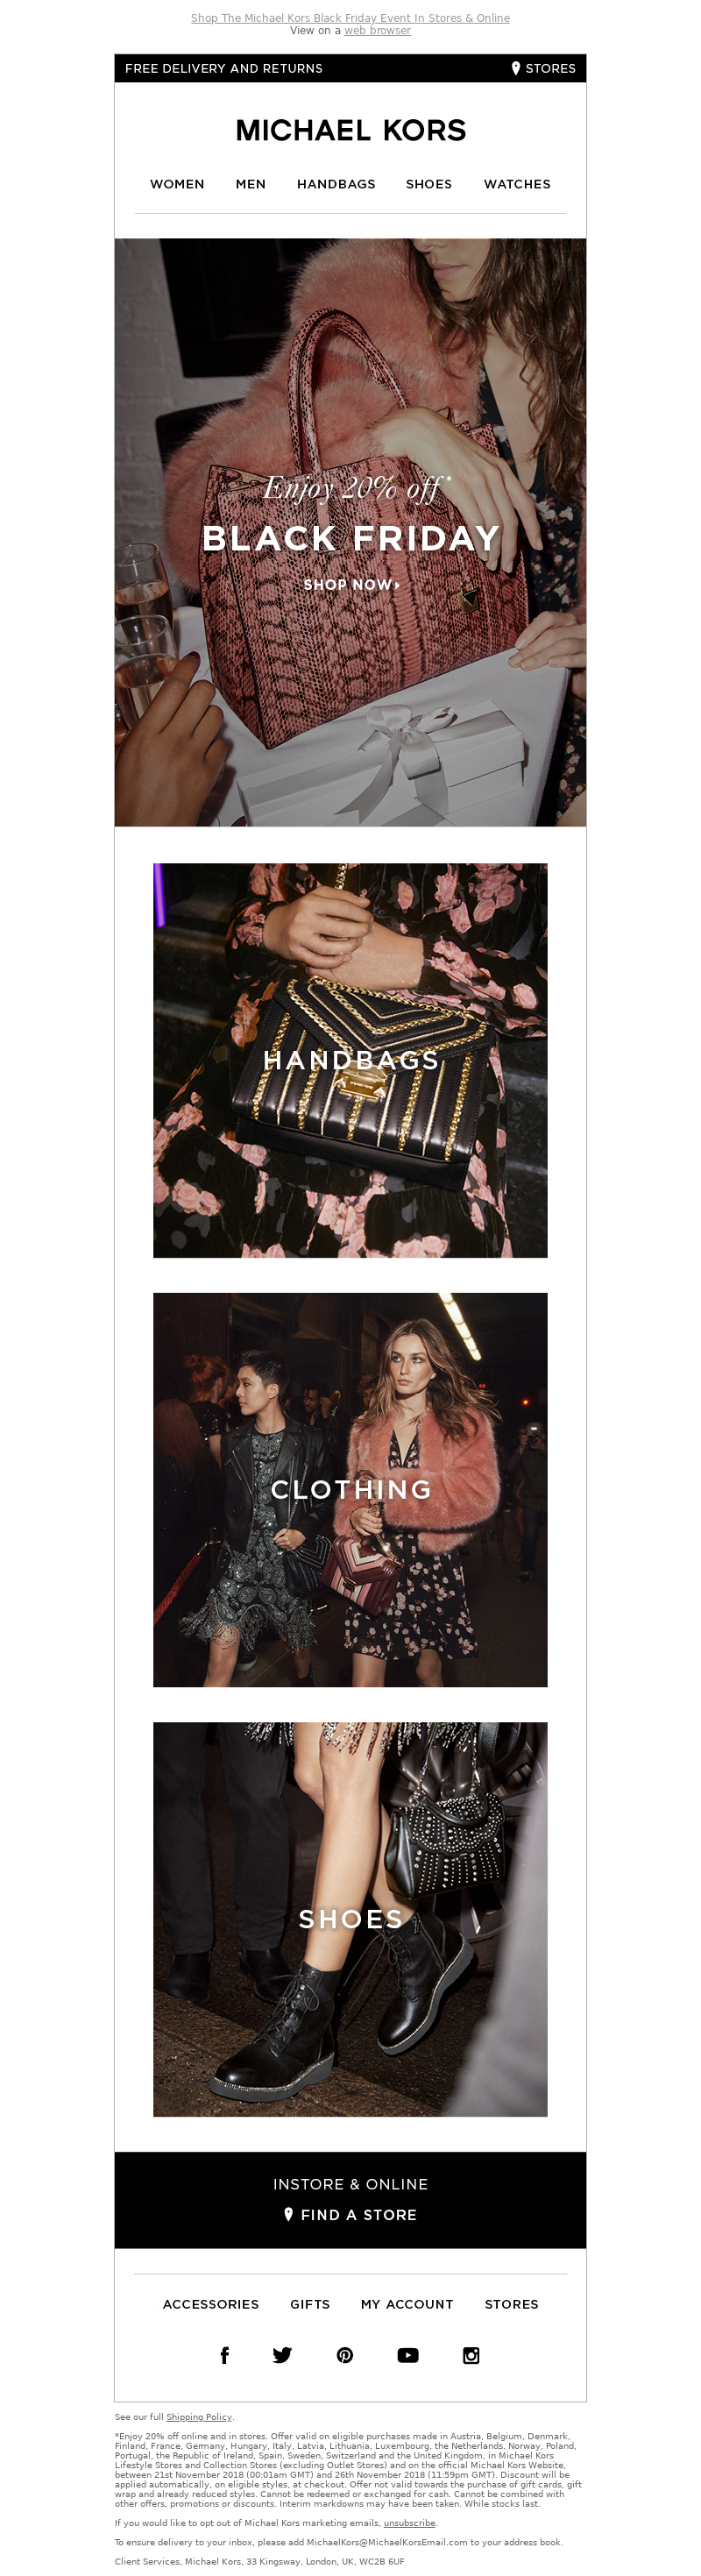 Michael Kors Email Marketing Examples